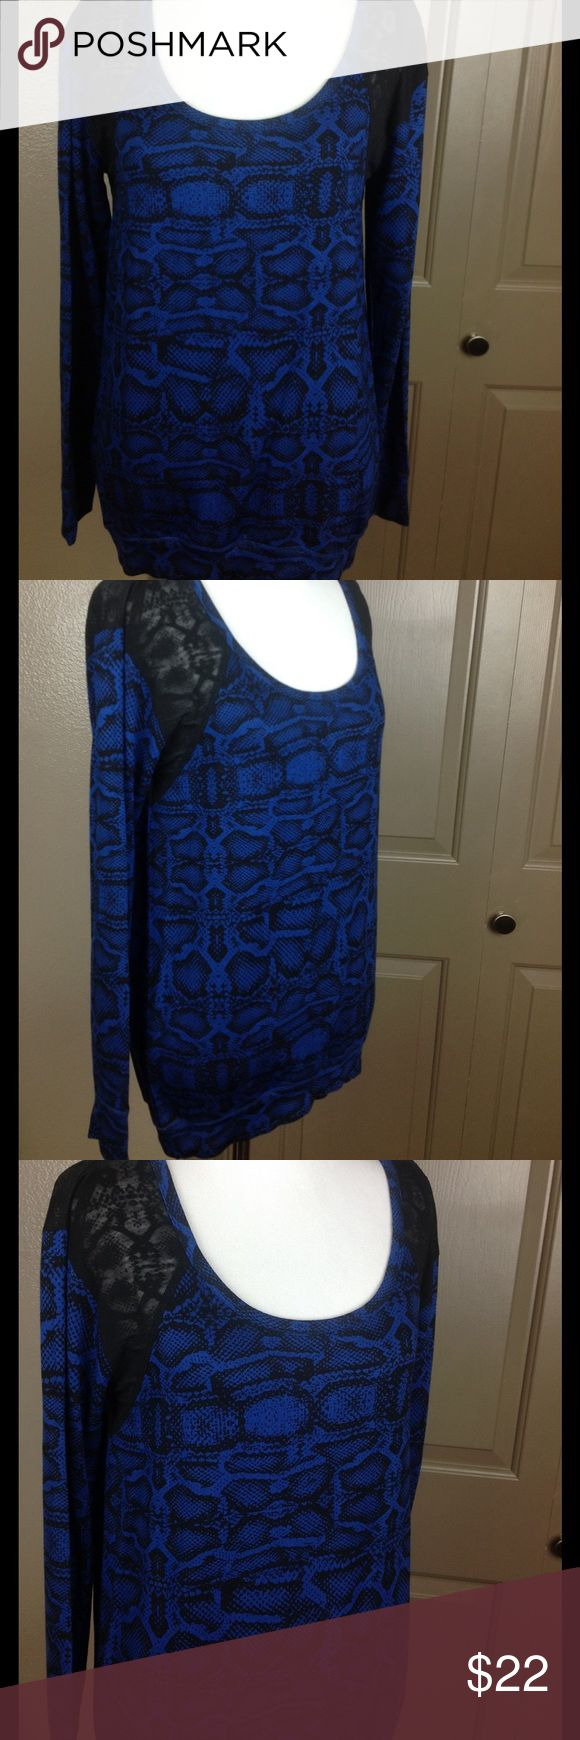 Jessica Simpson Active Top Small Snake Print Blue Partial open back sheer shoulders high/low roomy small 97/3 viscose/spandex machine wash 25 inch front 30 back 18 bust Jessica Simpson Tops Blouses